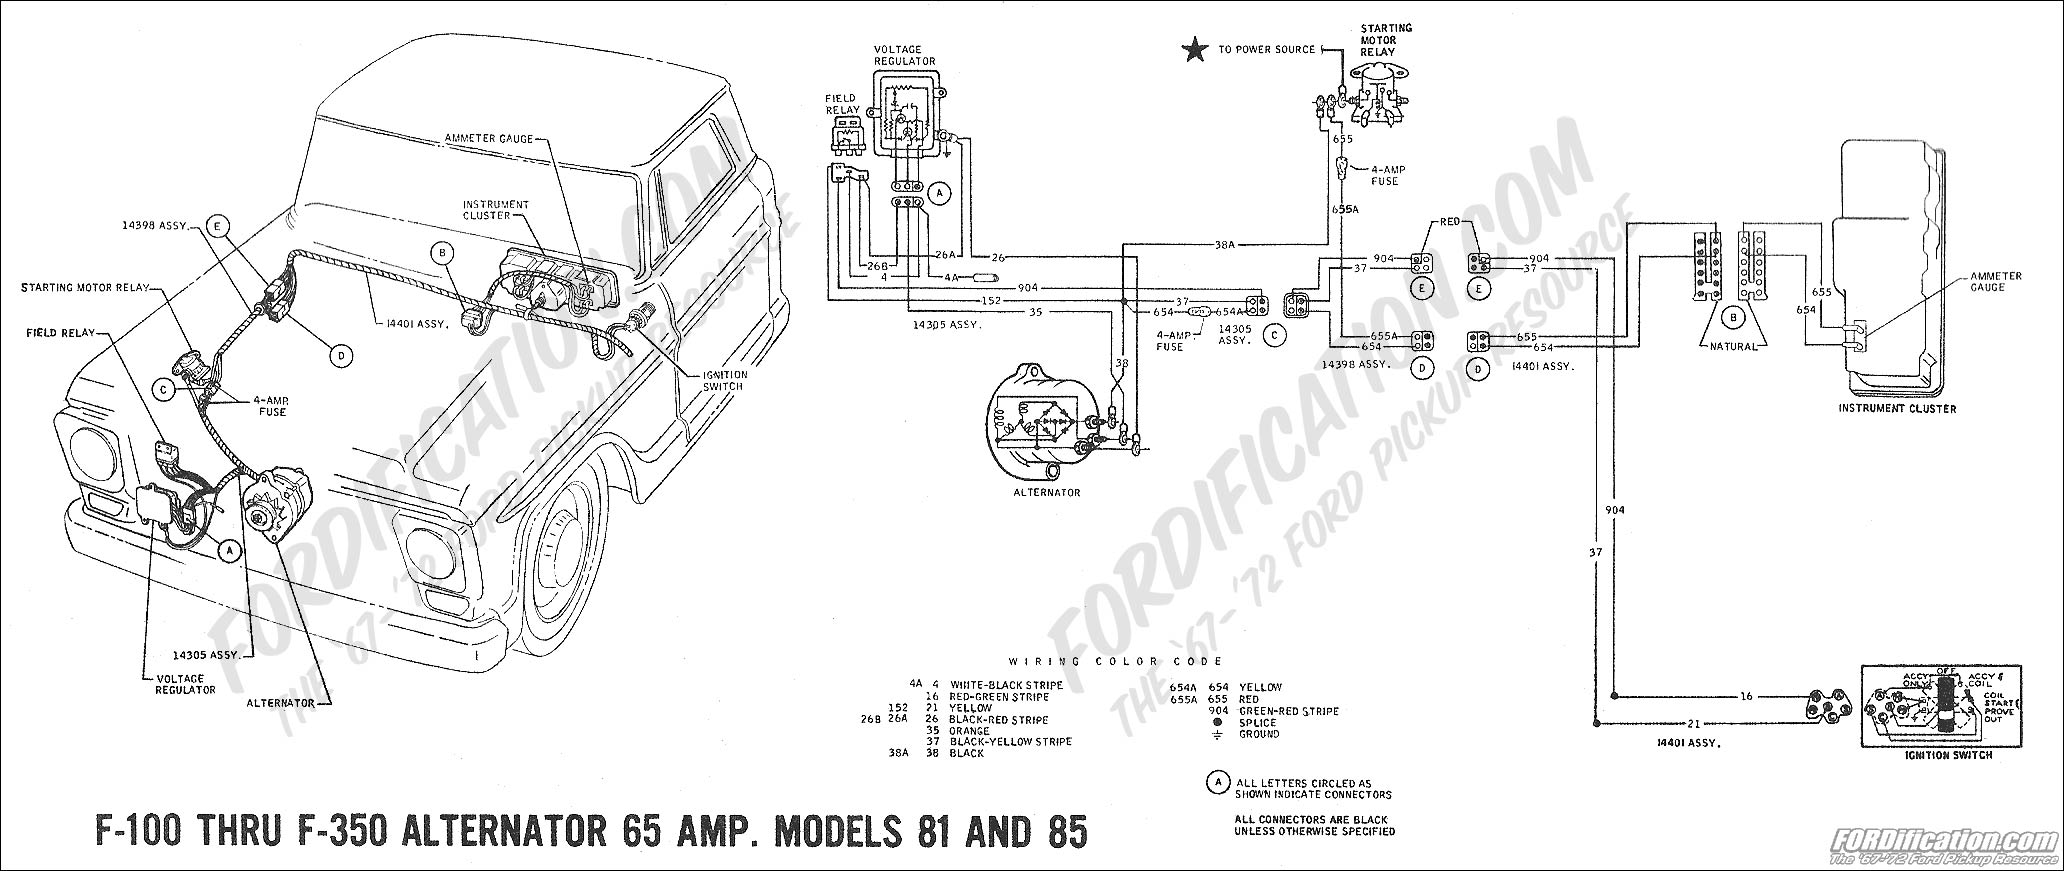 Ford Truck Technical Drawings And Schematics Section H Wiring 1973 Charger Diagram Ignition 1969 F 100 Thru 350 Alternator 65 Amp Models 81 85